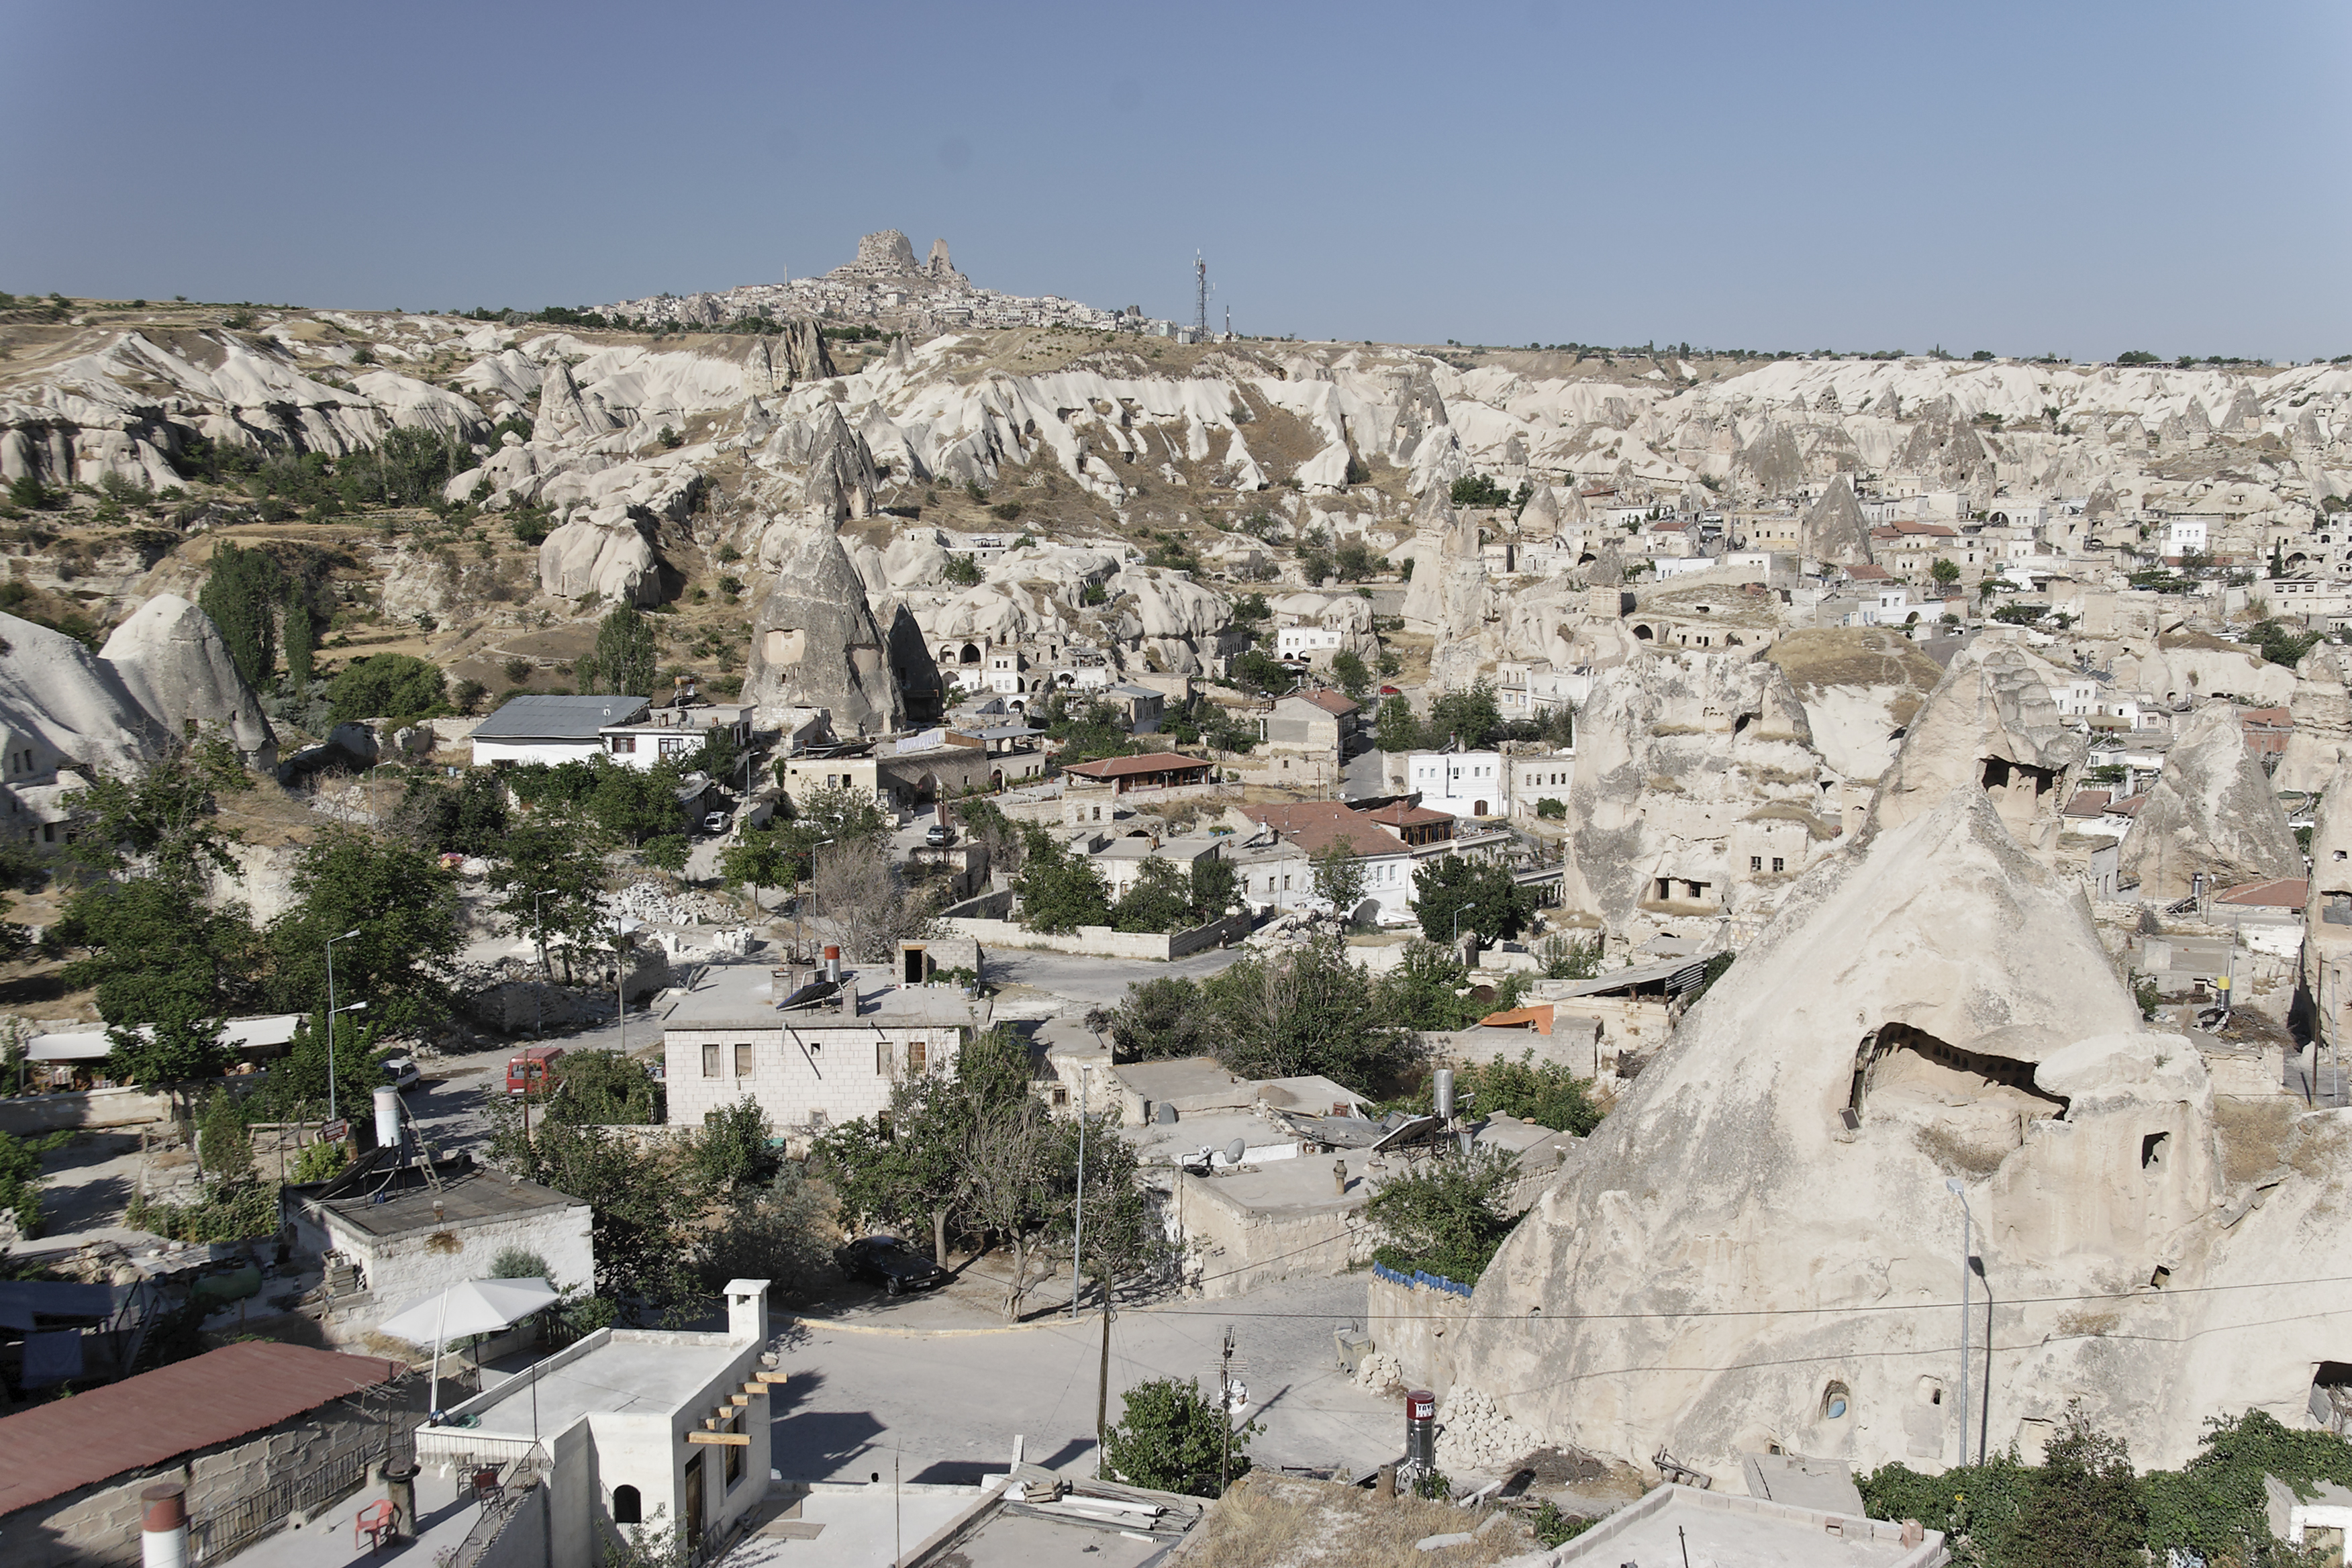 Fairy chimney rock formations, Goreme, Cappadocia Turkey 31.jpg - Goreme, Cappadocia, Turkey